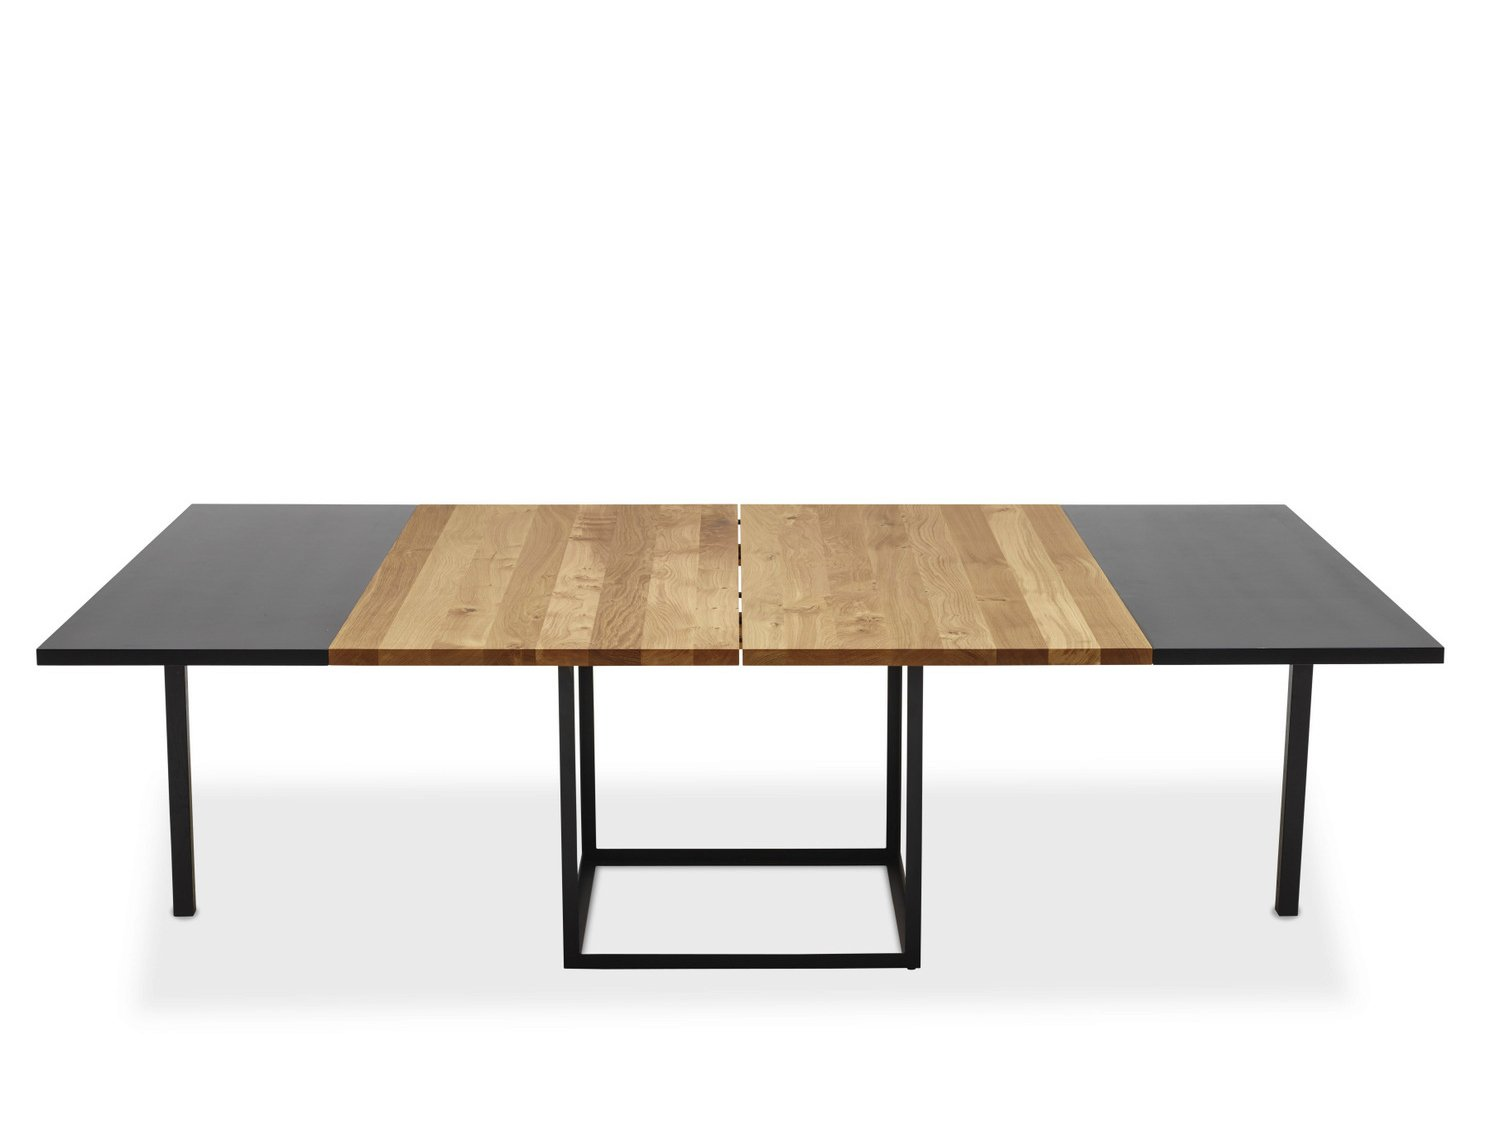 Bien connu Table carree rallonge design TW23